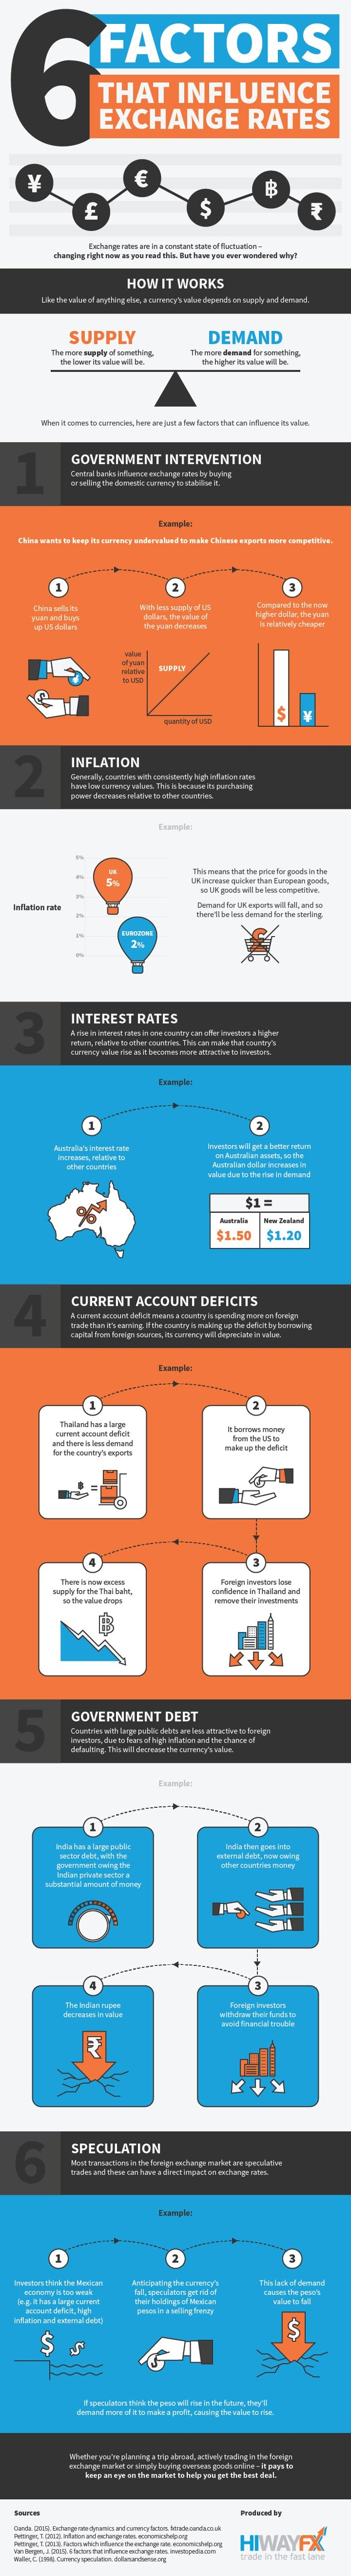 6 Factors That Influence Exchange Rates #Infographic